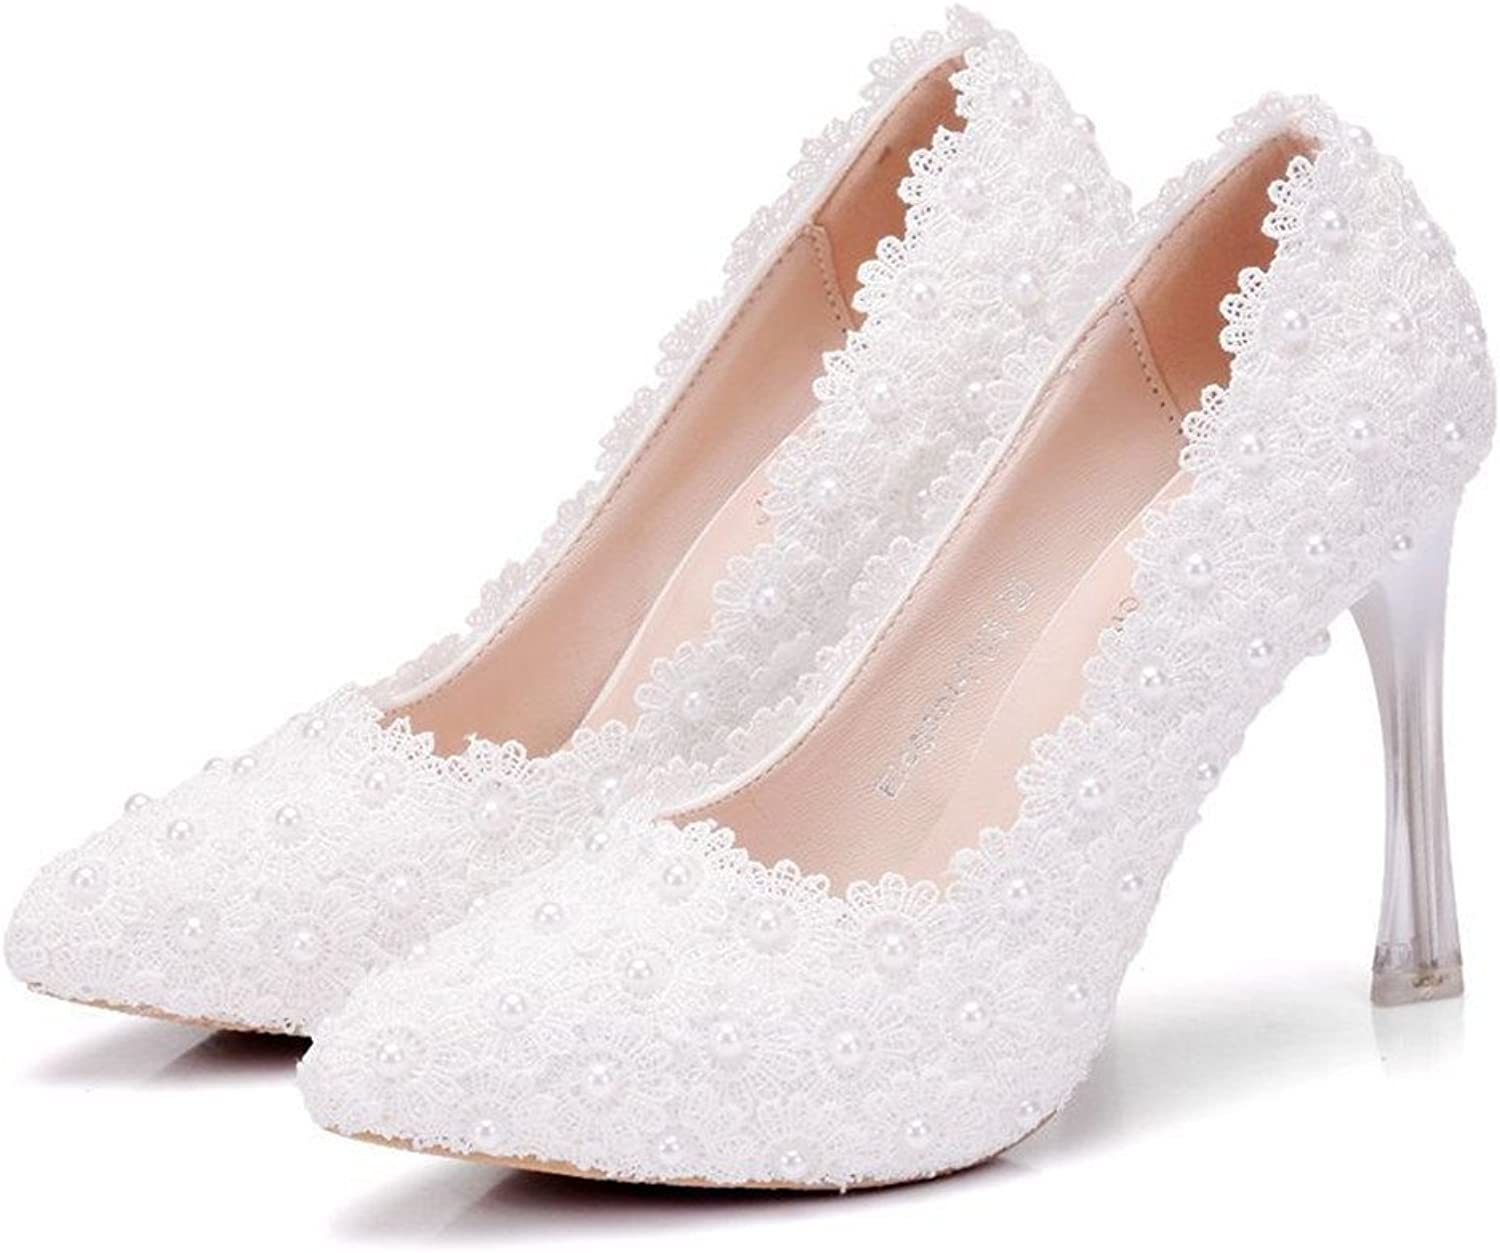 HYP Wedding Women shoes Wedding shoes Women Pumps Closed Toe Wedding Party Court shoes Bridesmaid Bridal shoes Crystal tip